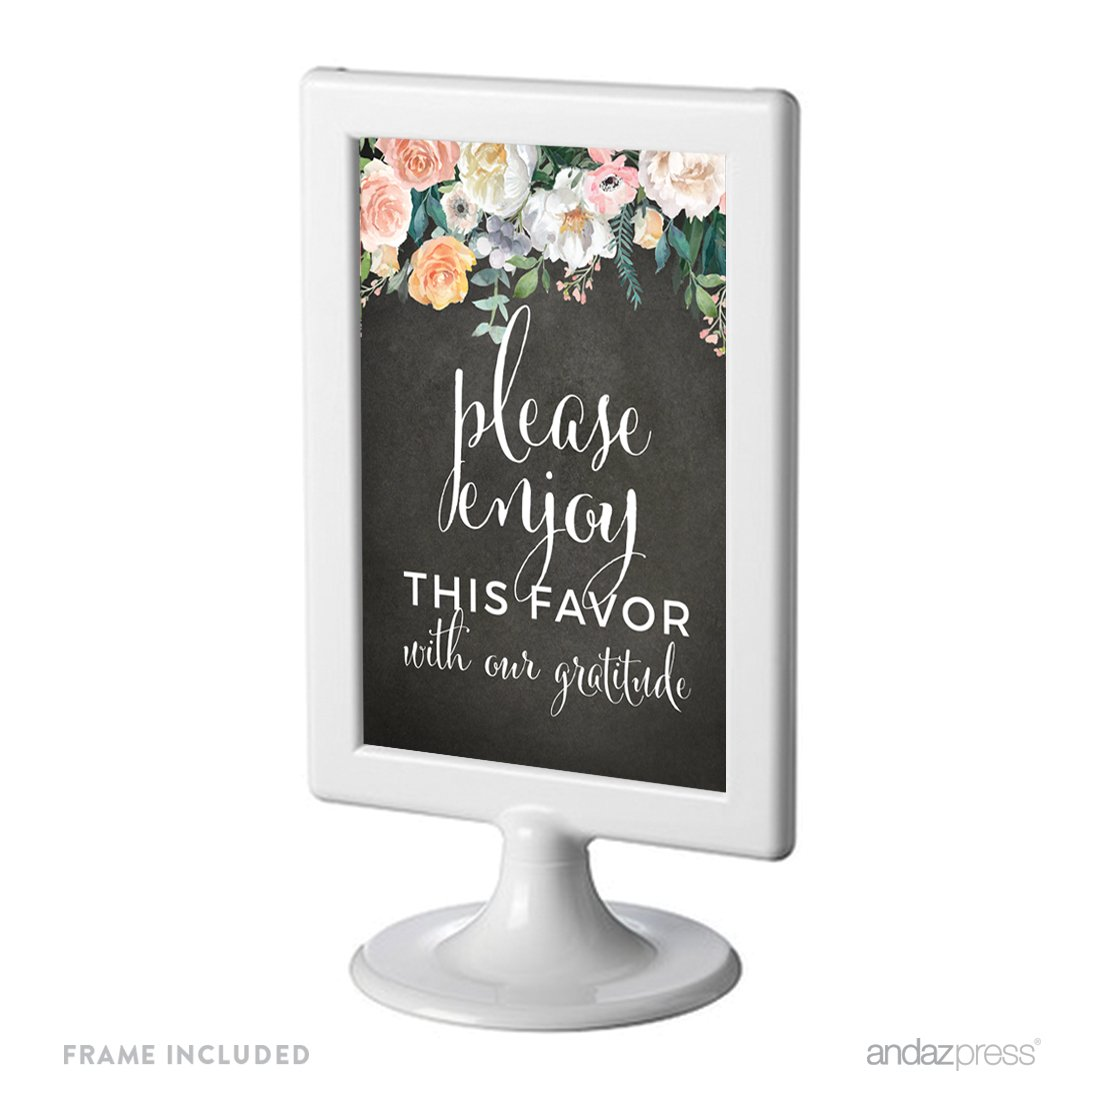 1-Pack 8.5x11-inch Andaz Press Peach Chalkboard Floral Garden Party Wedding Collection Reserved Party Signs